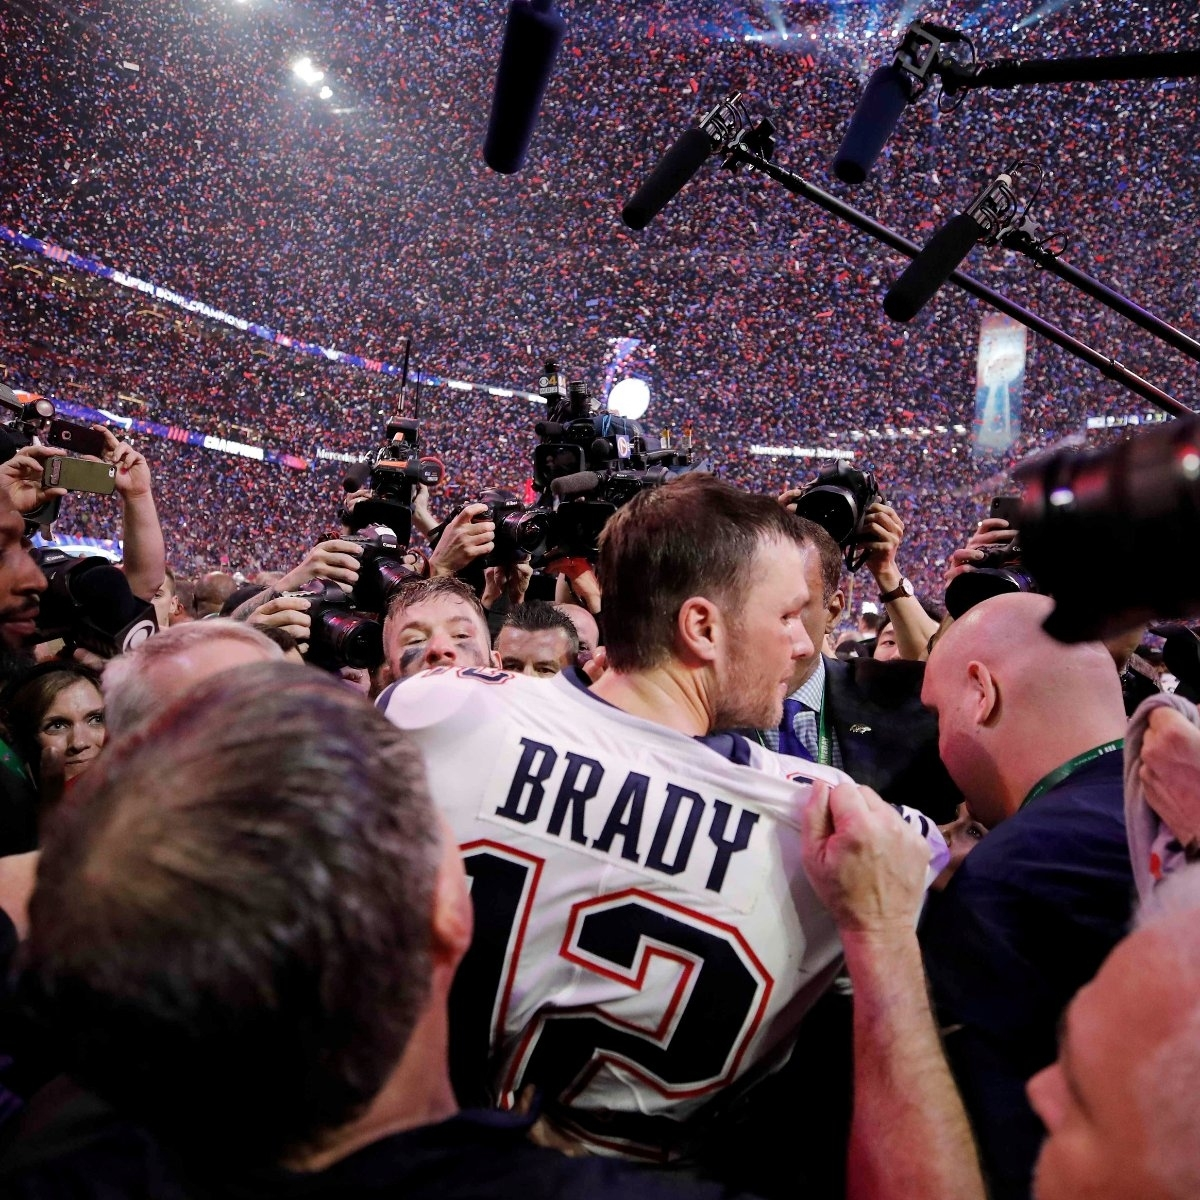 Super Bowl 2019: Tom Brady Und Die New England Patriots - 2 pertaining to Super Bowl 2019 Mvp Voting Online